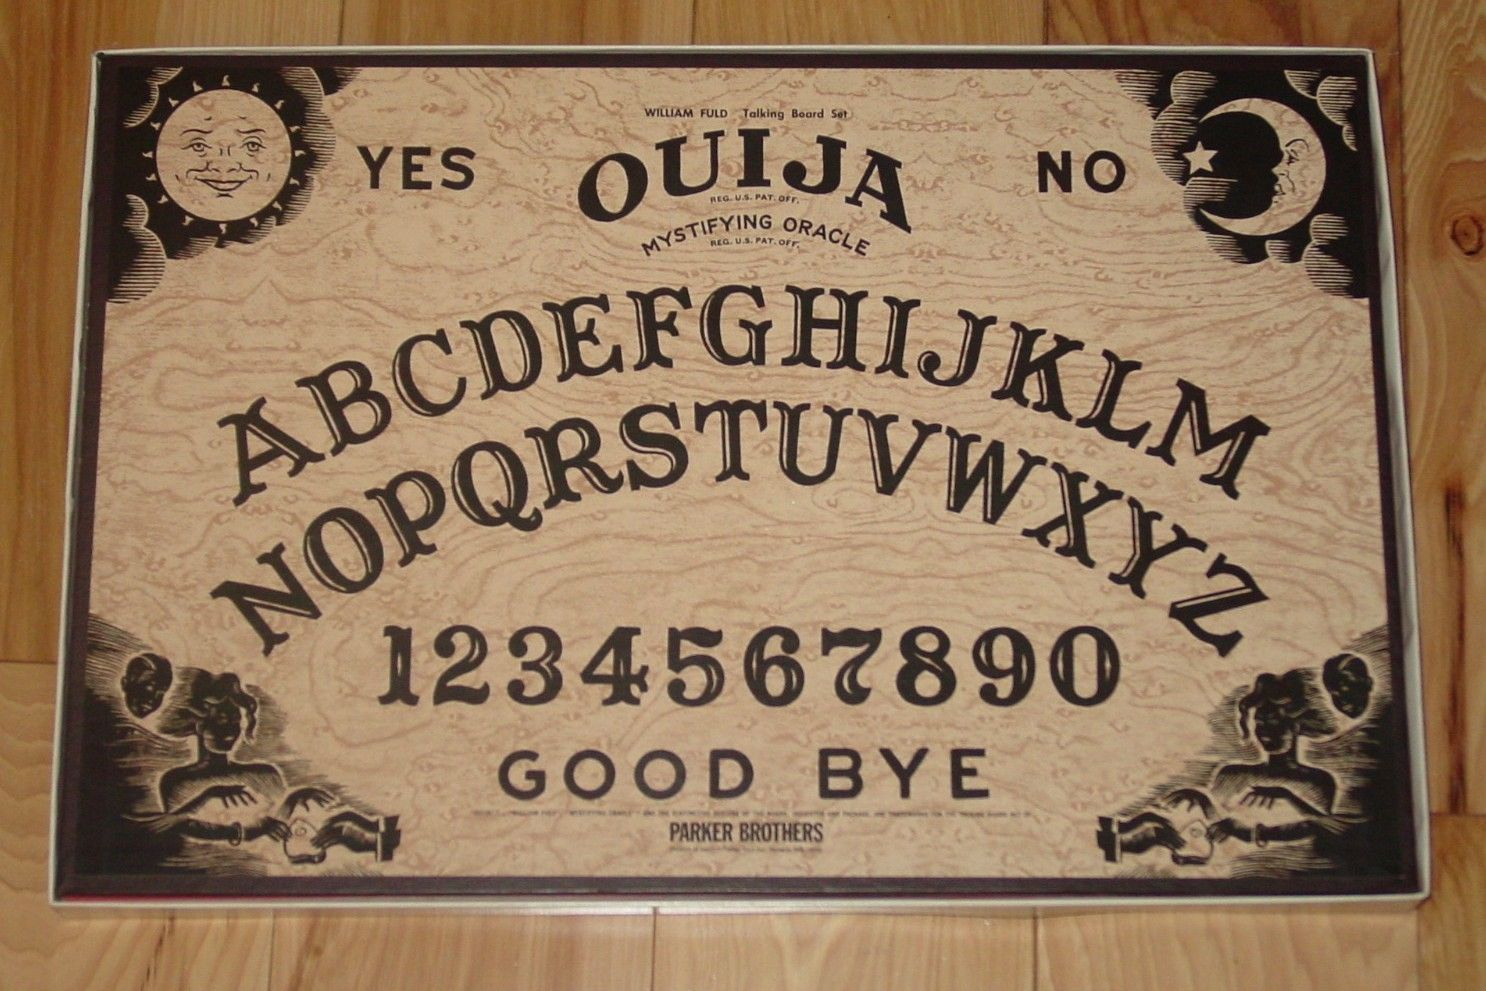 OUIJA MYSTIFYING ORACLE WILLIAM FULD BOARD SET 1972 PARKER BROTHERS COMPLETE image 3